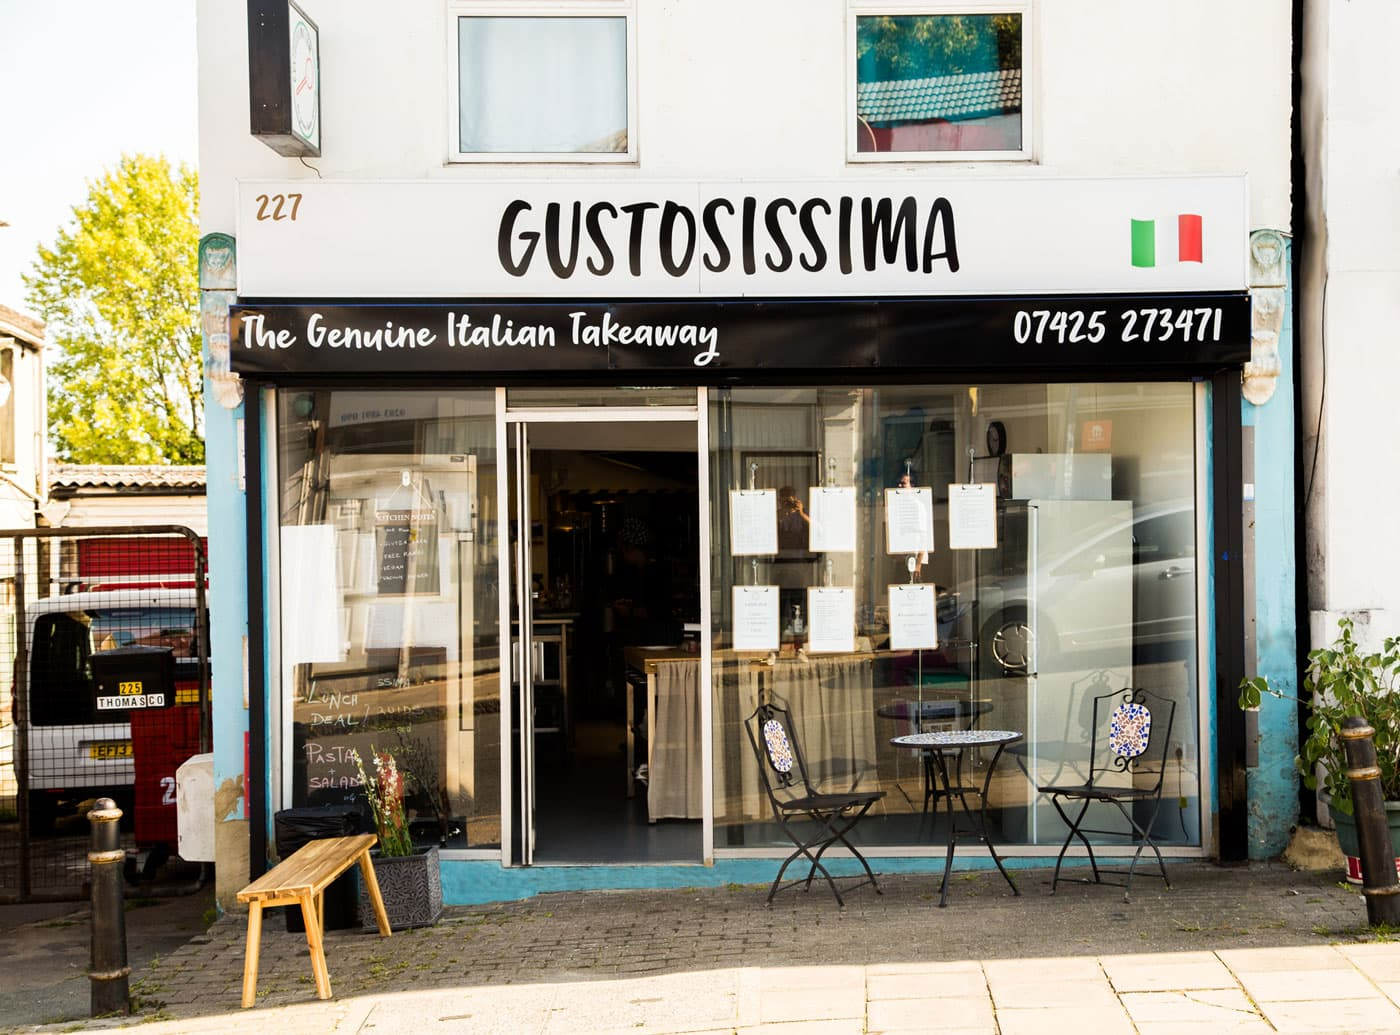 the front of an Italian restaurant, Gustosissima, signage designed by Bell Pepper Design